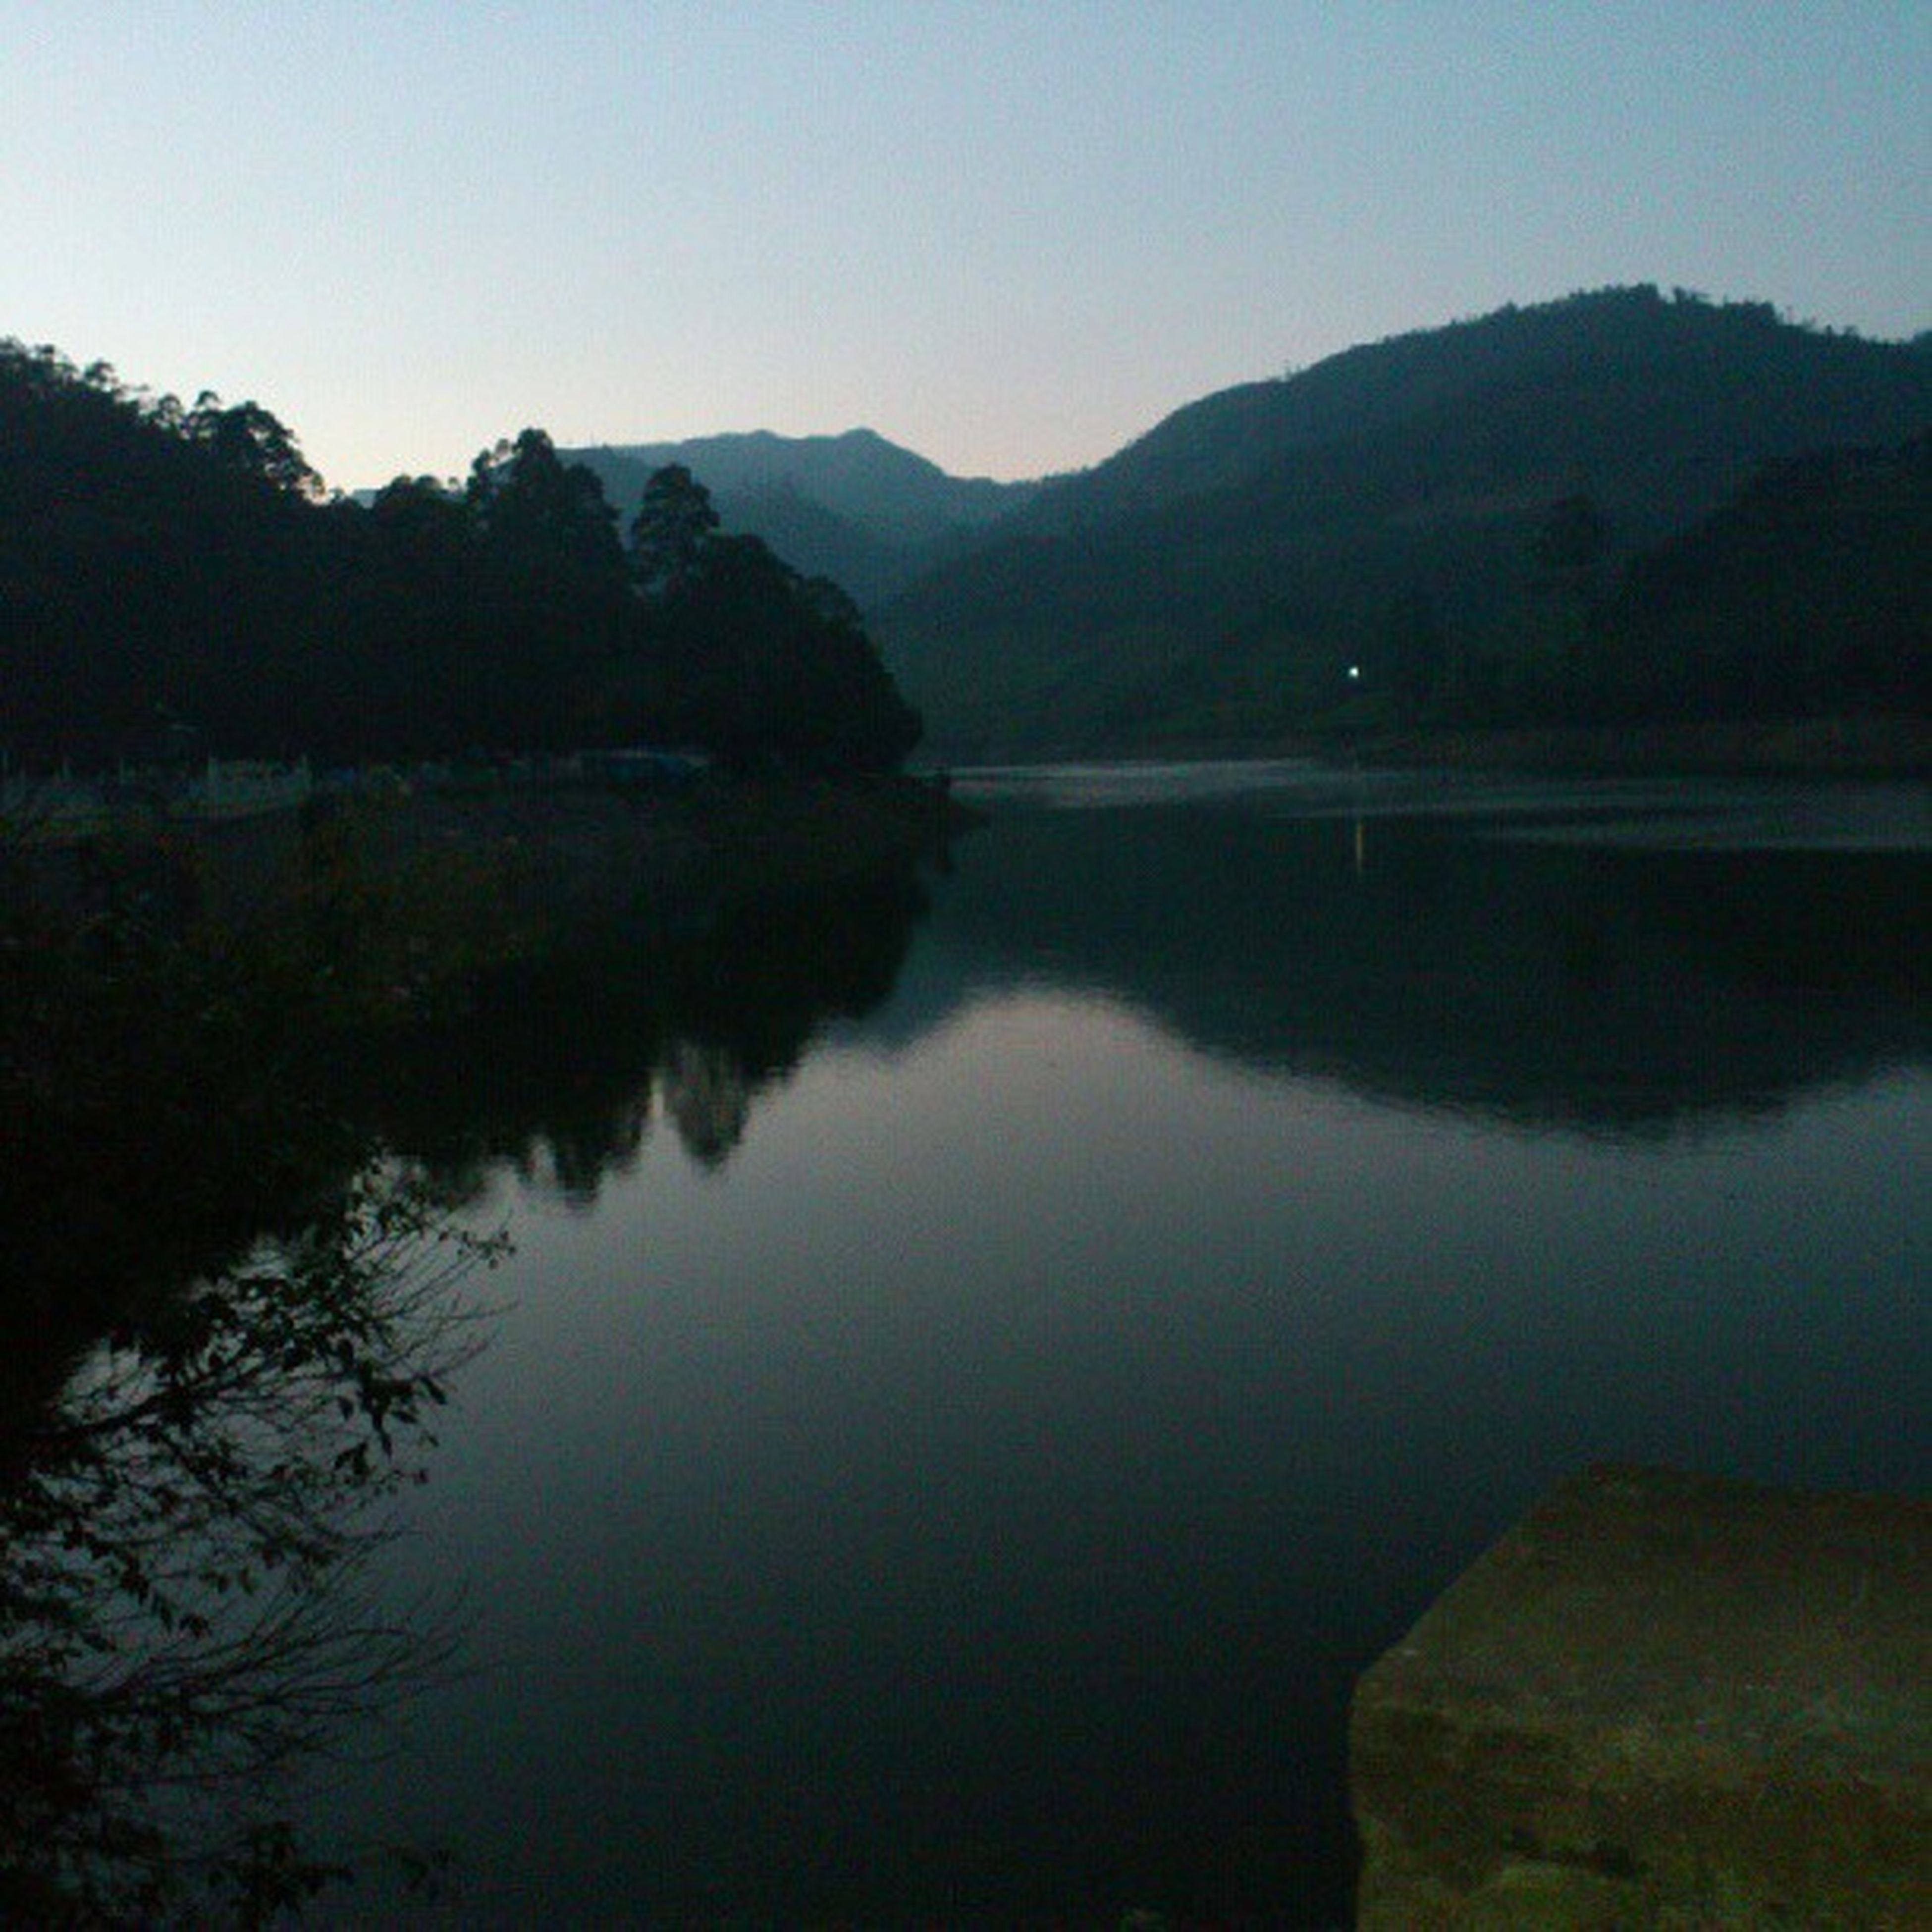 water, lake, reflection, mountain, tranquility, tranquil scene, scenics, beauty in nature, mountain range, clear sky, nature, tree, standing water, calm, idyllic, river, sky, countryside, lakeshore, non-urban scene